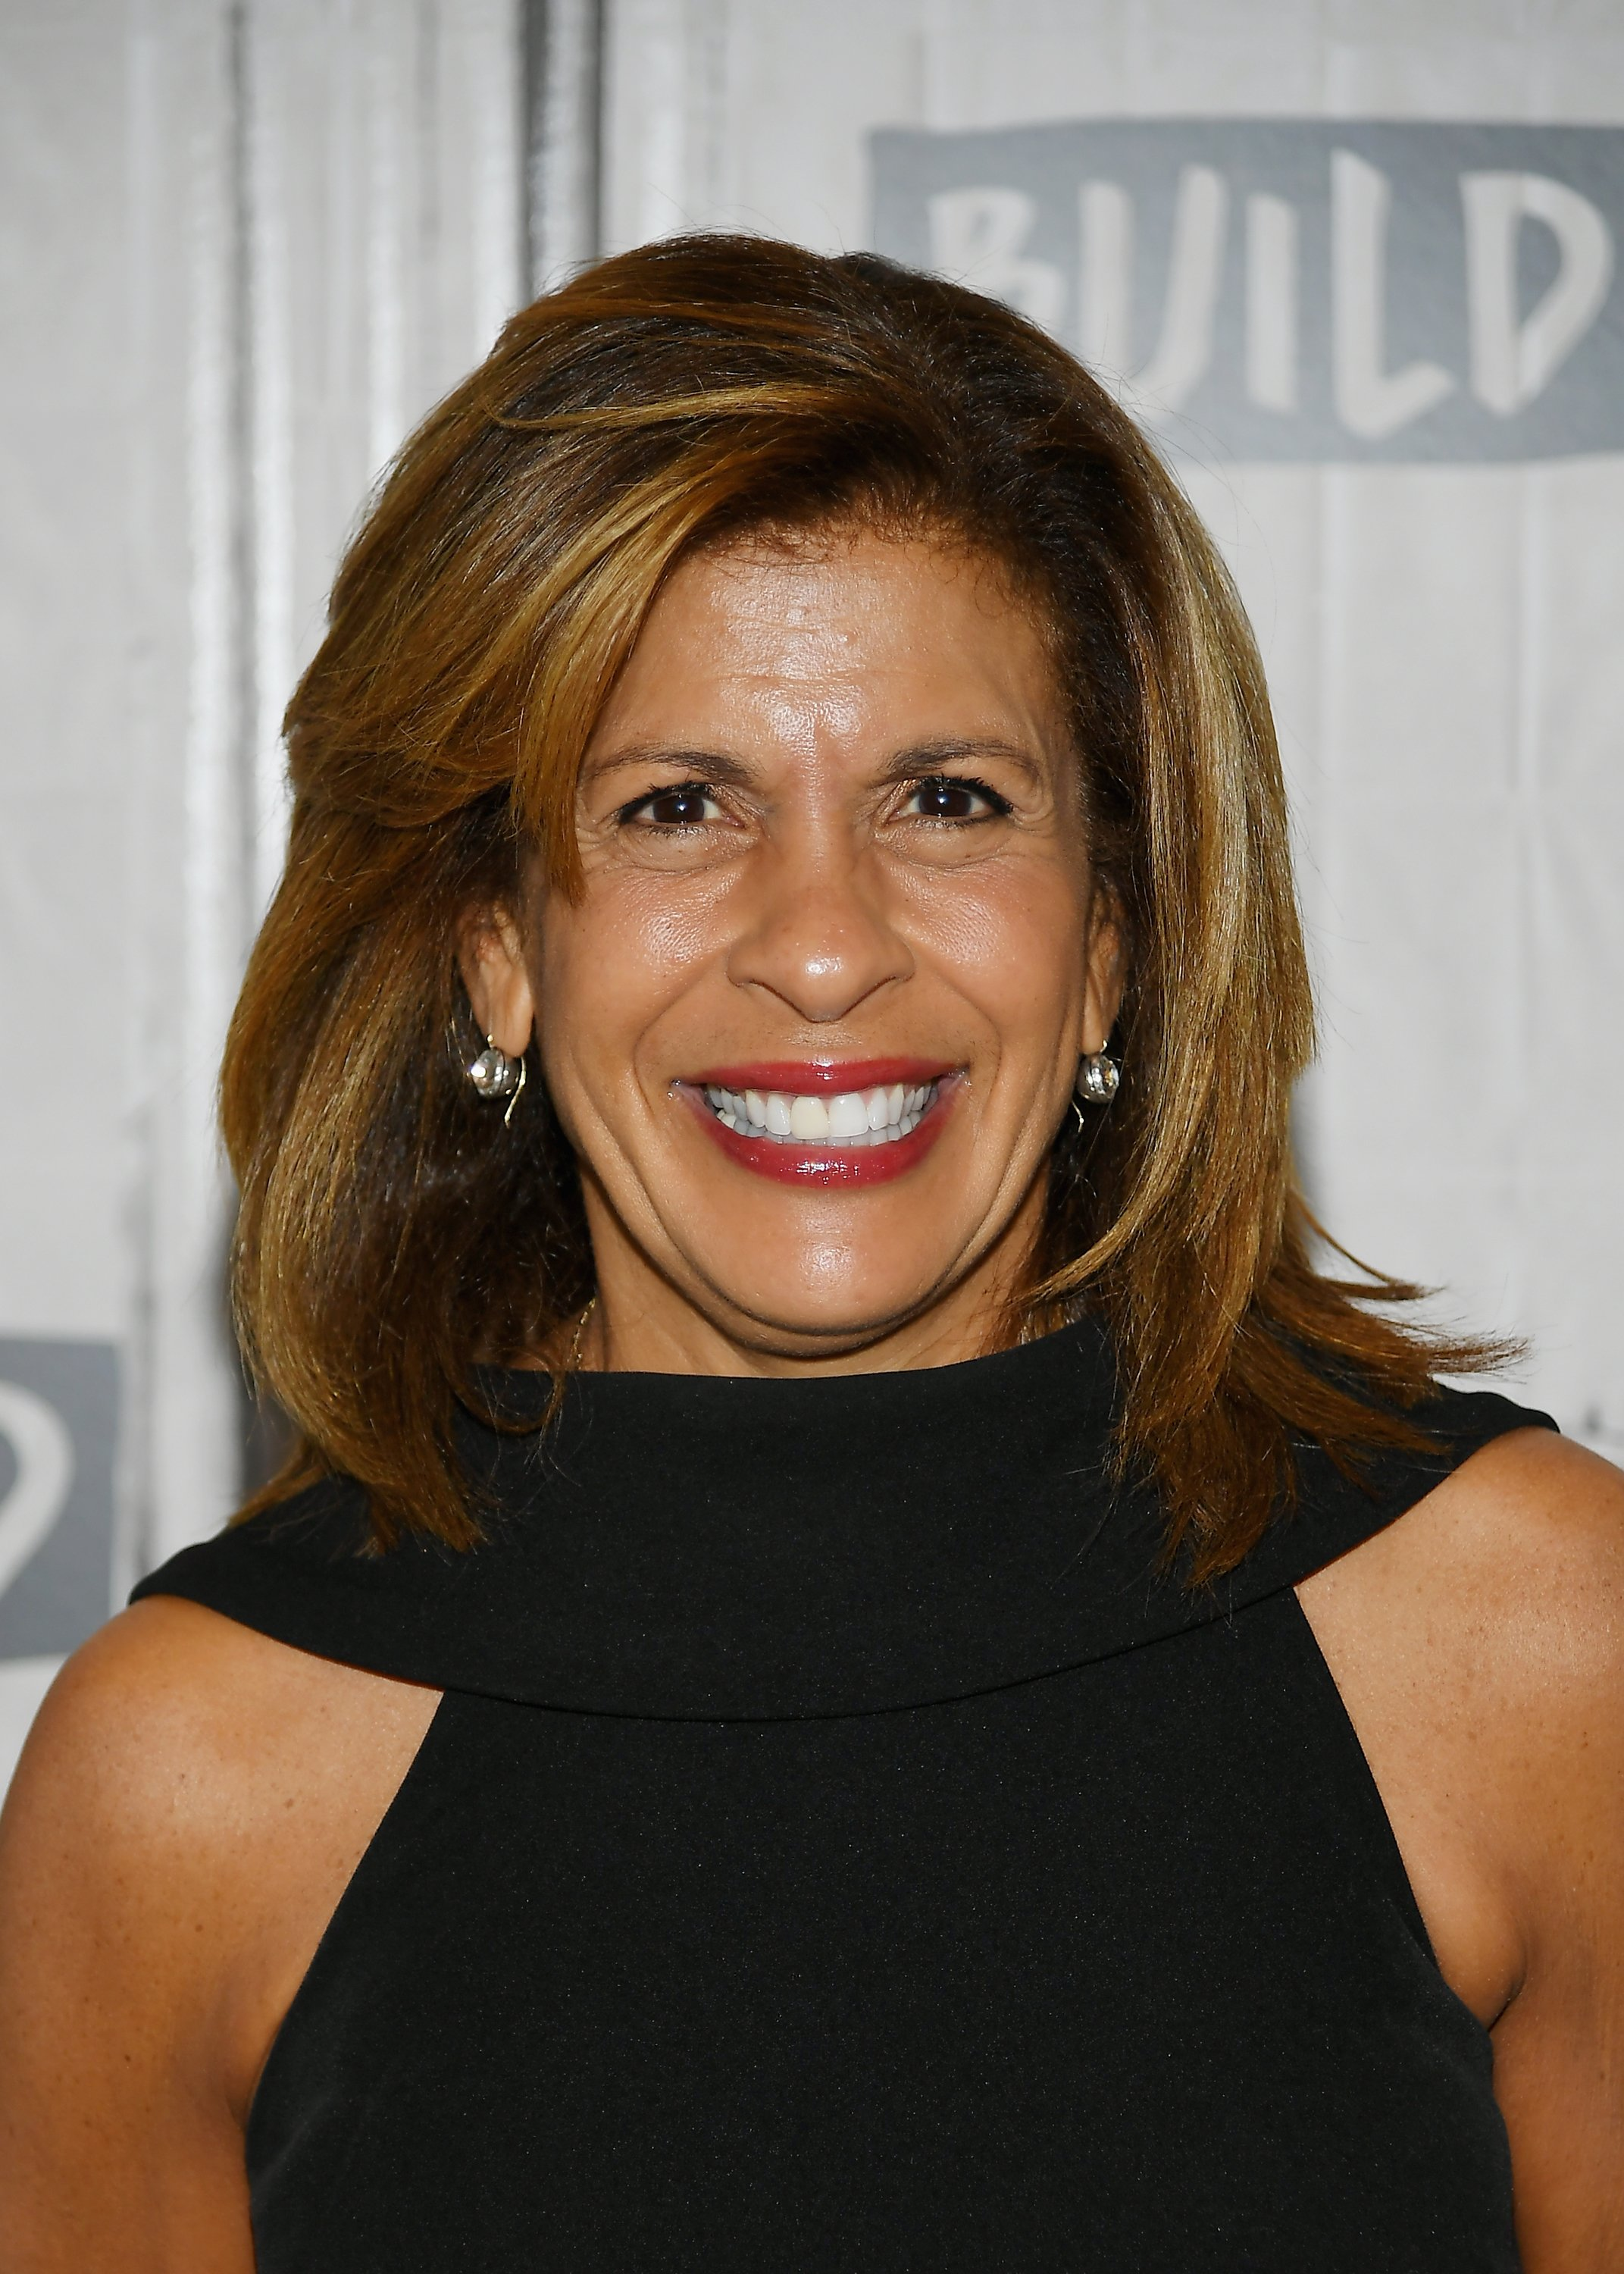 """Hoda Kotb visits Build to discuss her new book """"You Are My Happy"""" at Build Studio on March 12, 2019 